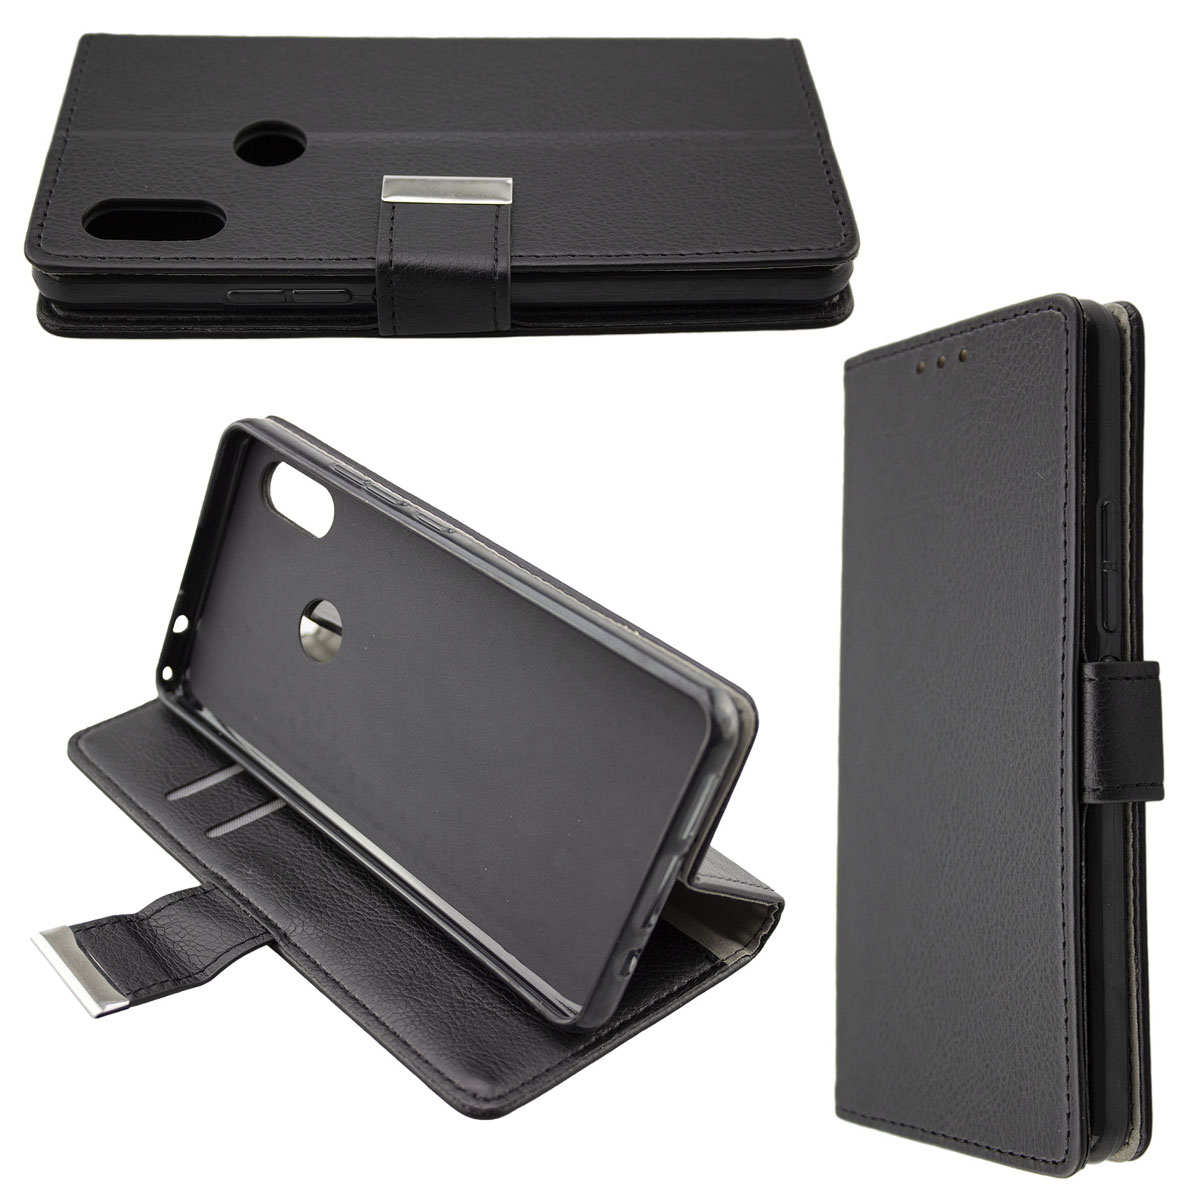 Details about caseroxx Bookstyle-Case for UMIDIGI S3 Pro in black made of  faux leather